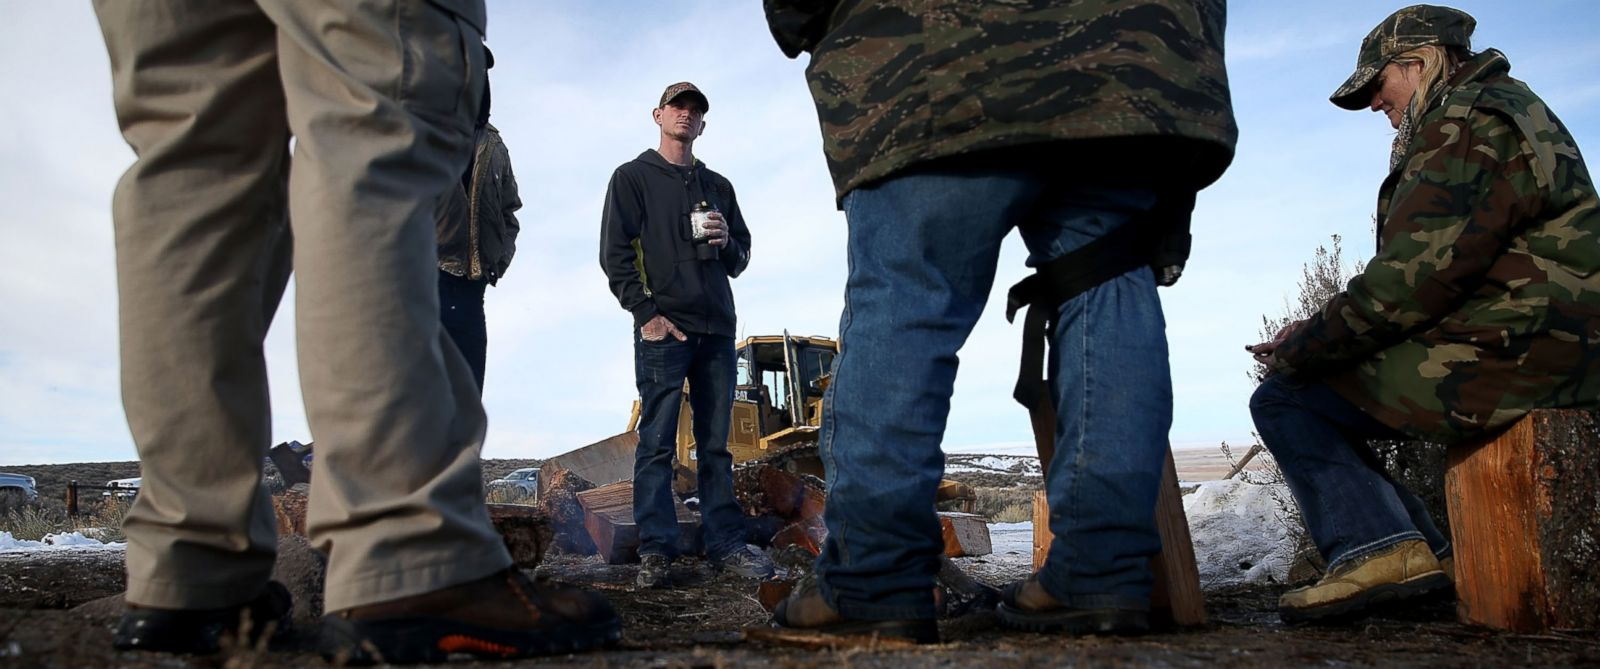 PHOTO: Members of the group occupying Malheur National Wildlife Refuge Headquarters are seen here on Jan. 6, 2016 near Burns, Oregon.